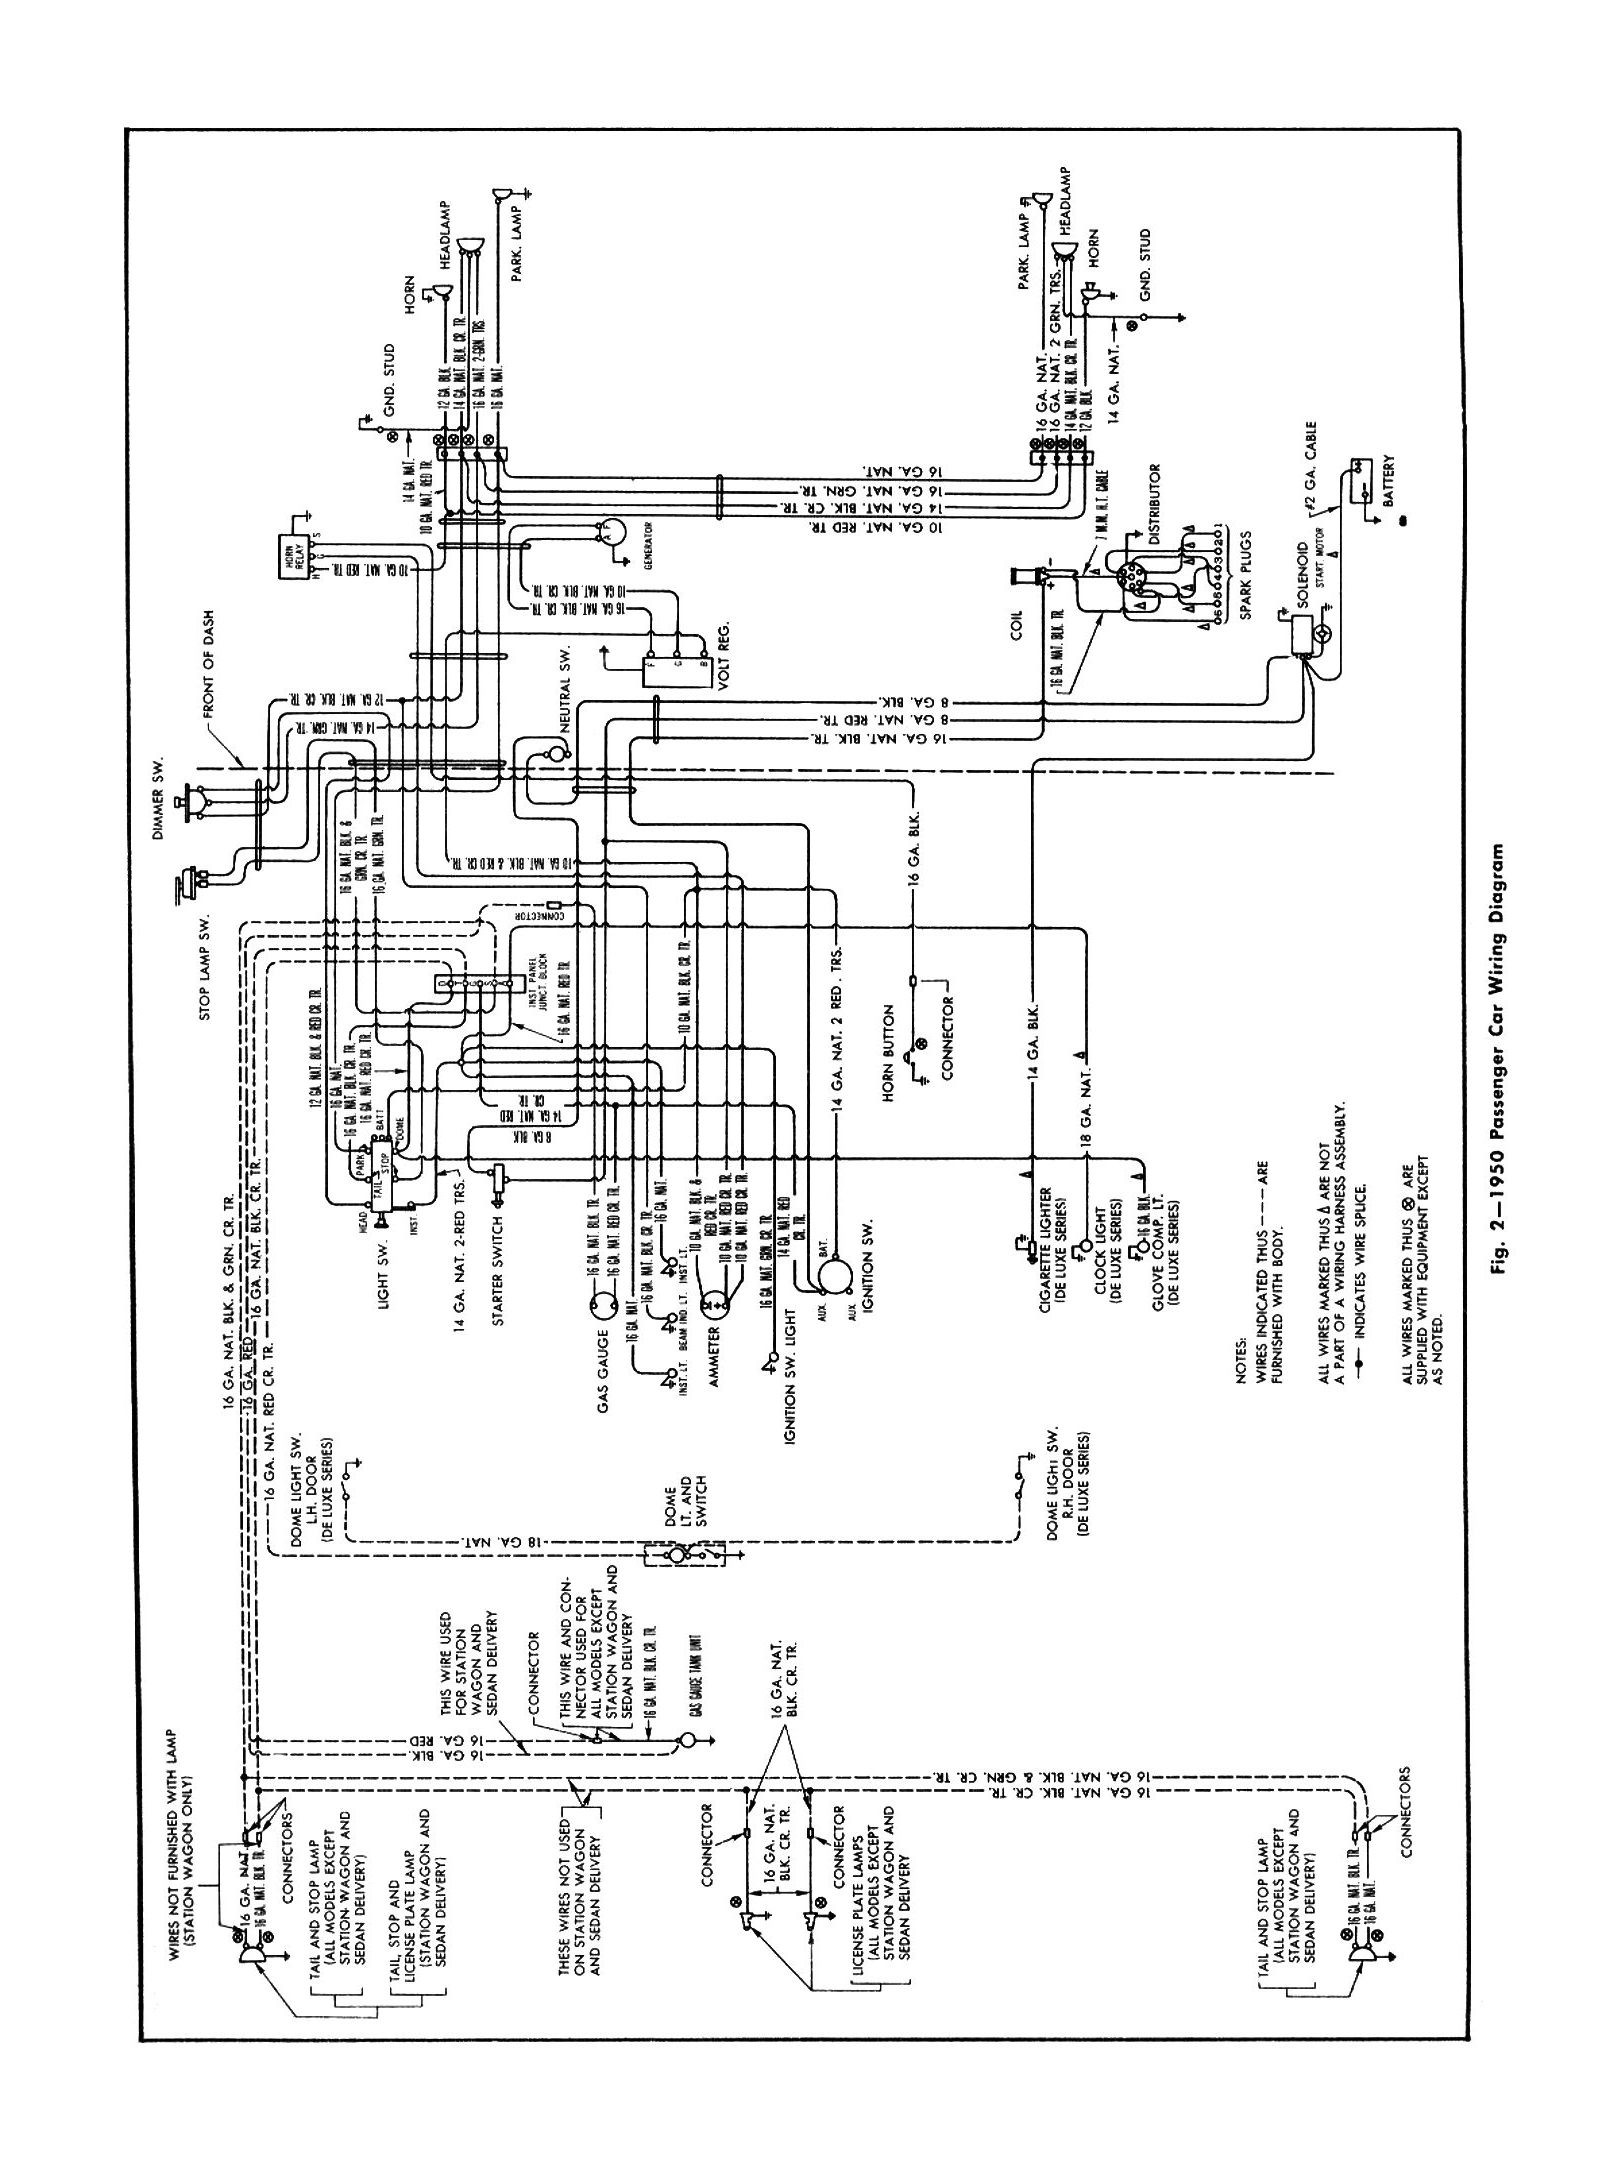 50car chevy wiring diagrams Chevy Truck Wiring Diagram at bayanpartner.co